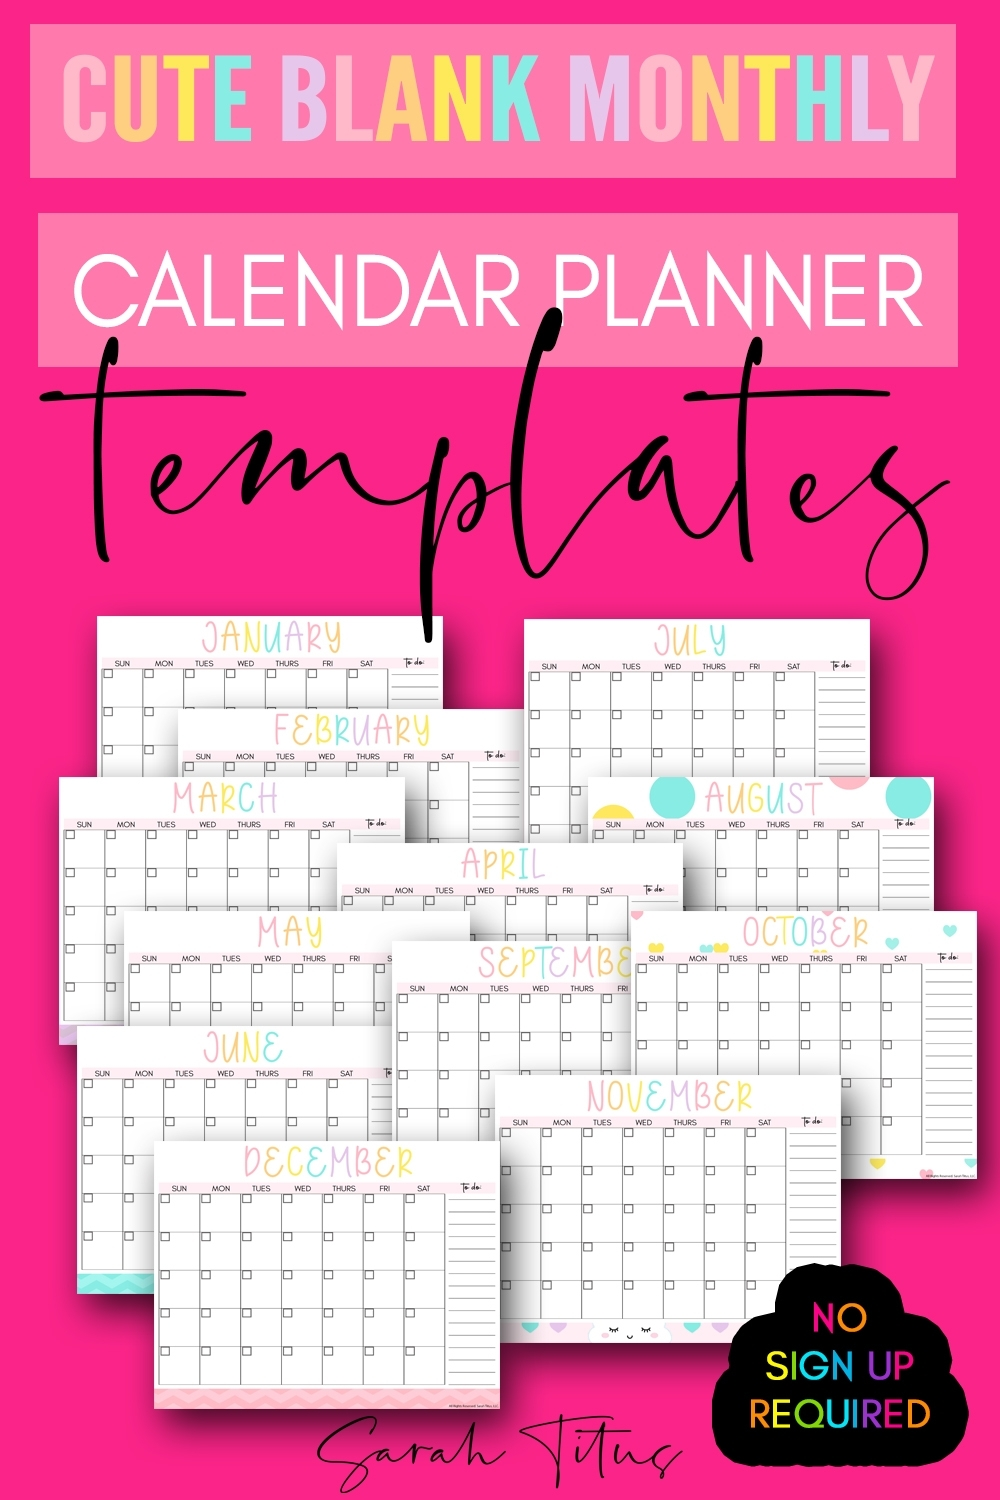 Collect Blank Monthly Calendar Printable